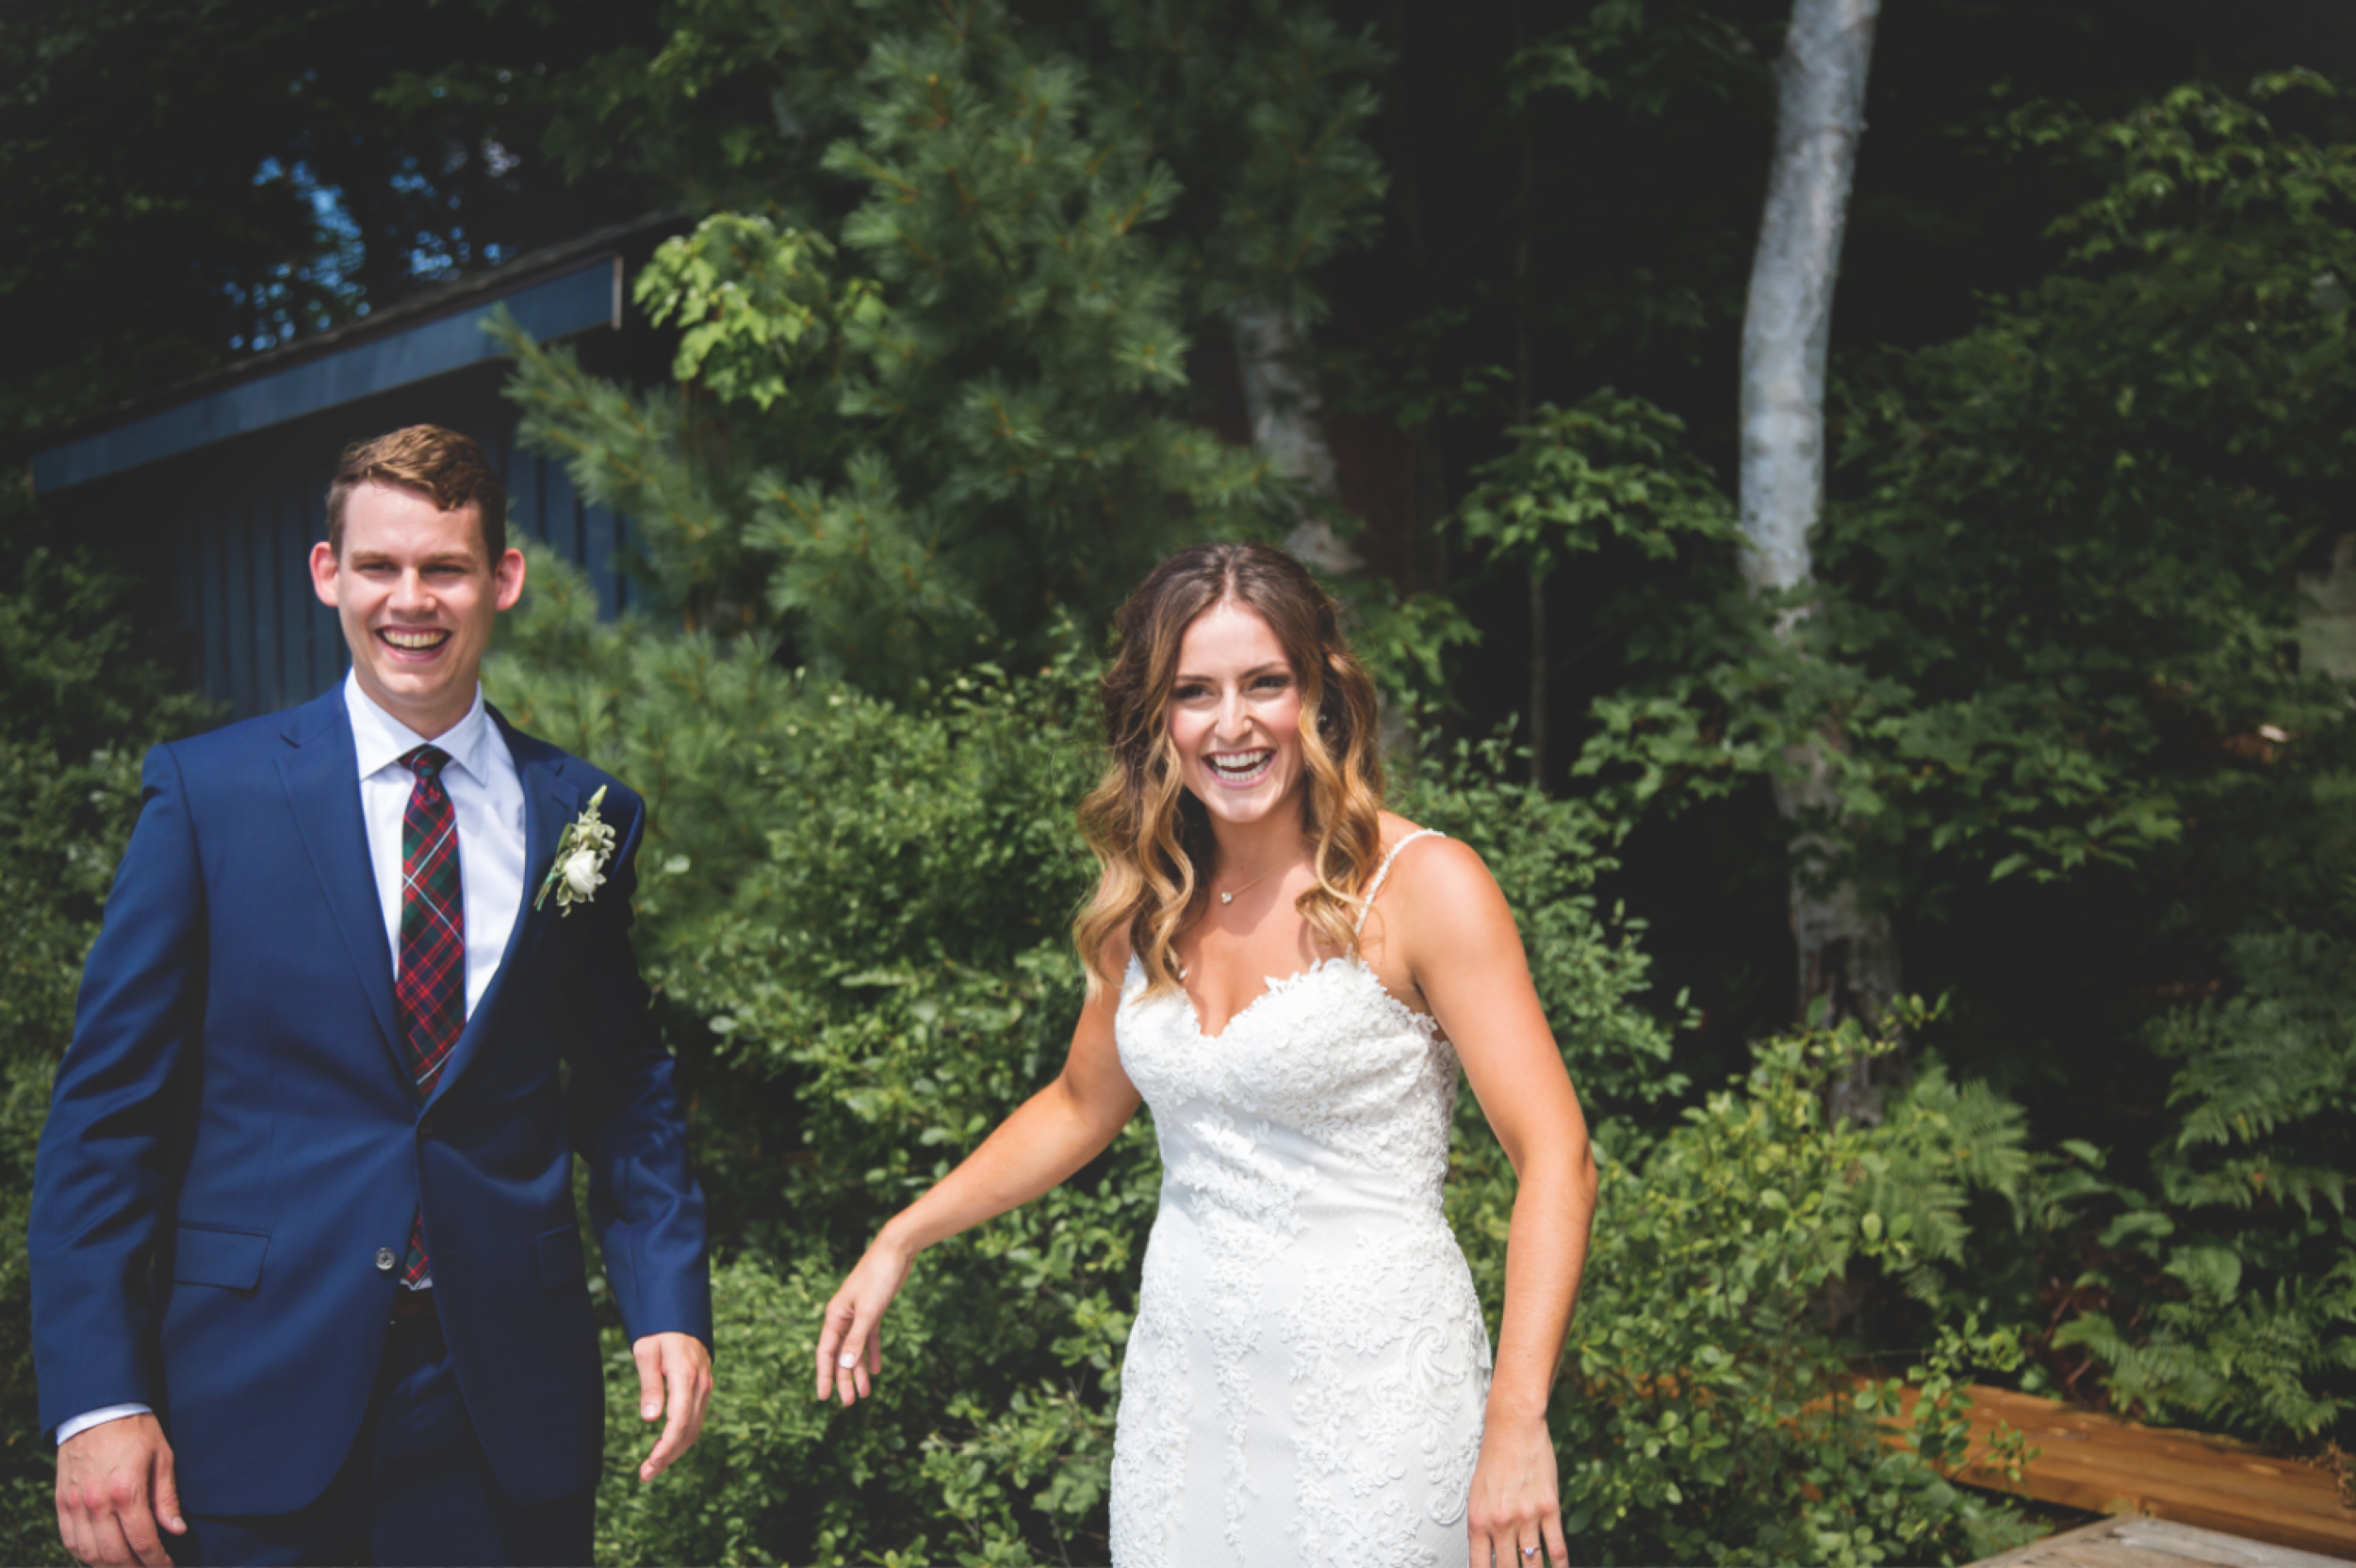 Wedding-Photos-Muskoka-Clevelands-House-Photographer-Wedding-Hamilton-GTA-Niagara-Oakville-Moments-by-Lauren-Photography-Photo-Image-29.png